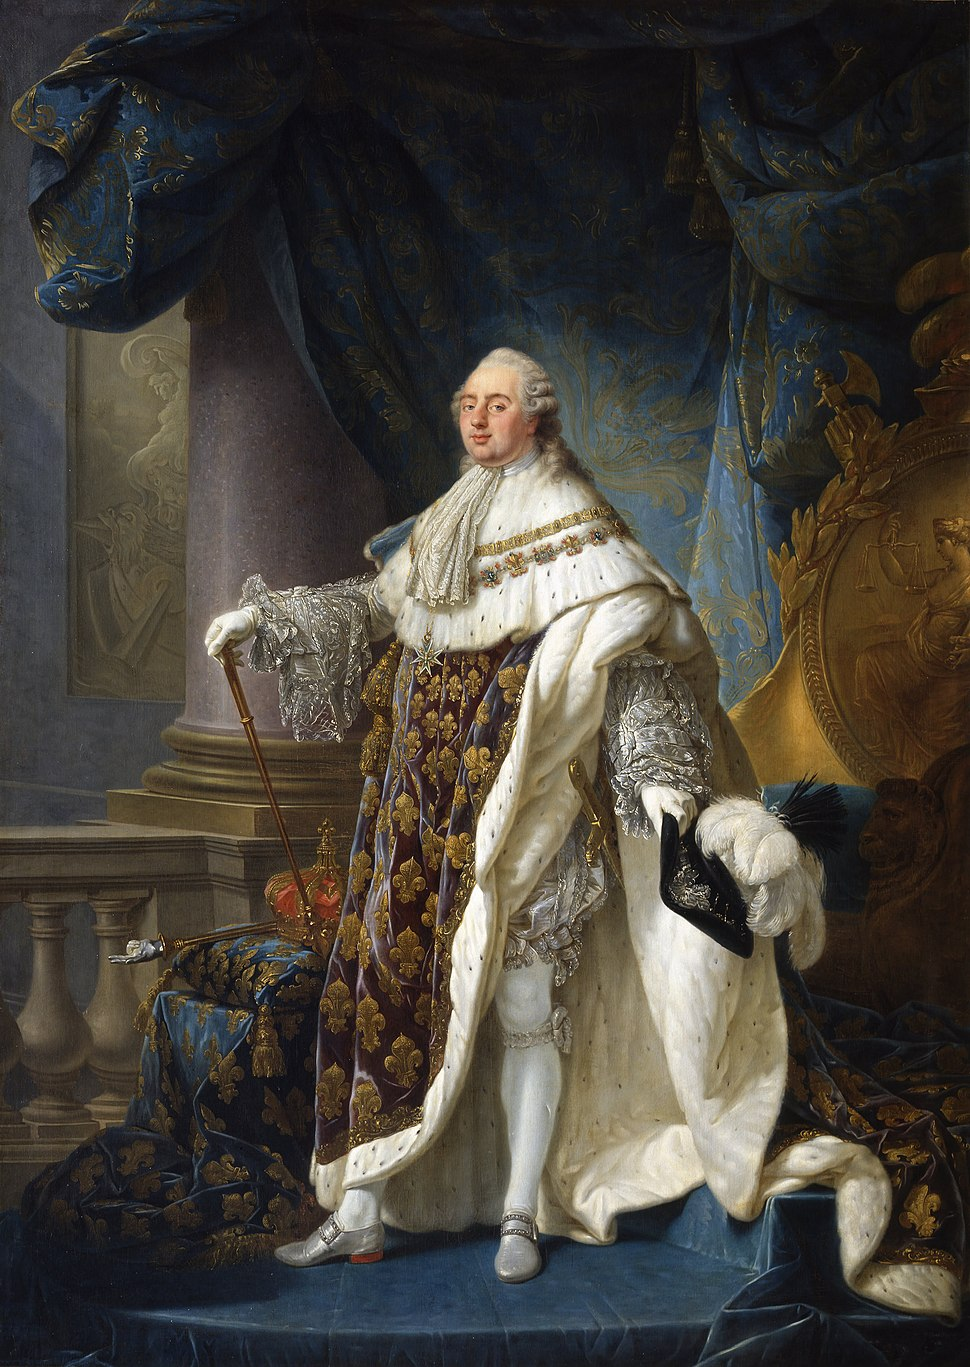 Antoine-Fran%C3%A7ois Callet - Louis XVI, roi de France et de Navarre (1754-1793), rev%C3%AAtu du grand costume royal en 1779 - Google Art Project